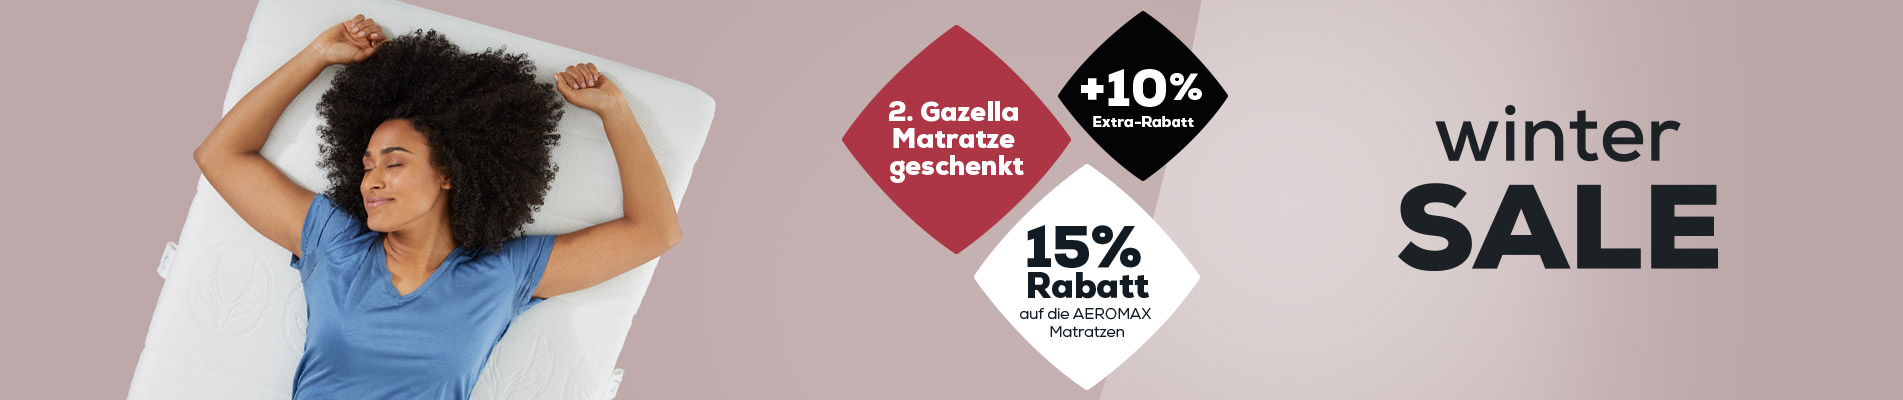 Matratzen Kollektion - Winter Sale | Swiss Sense